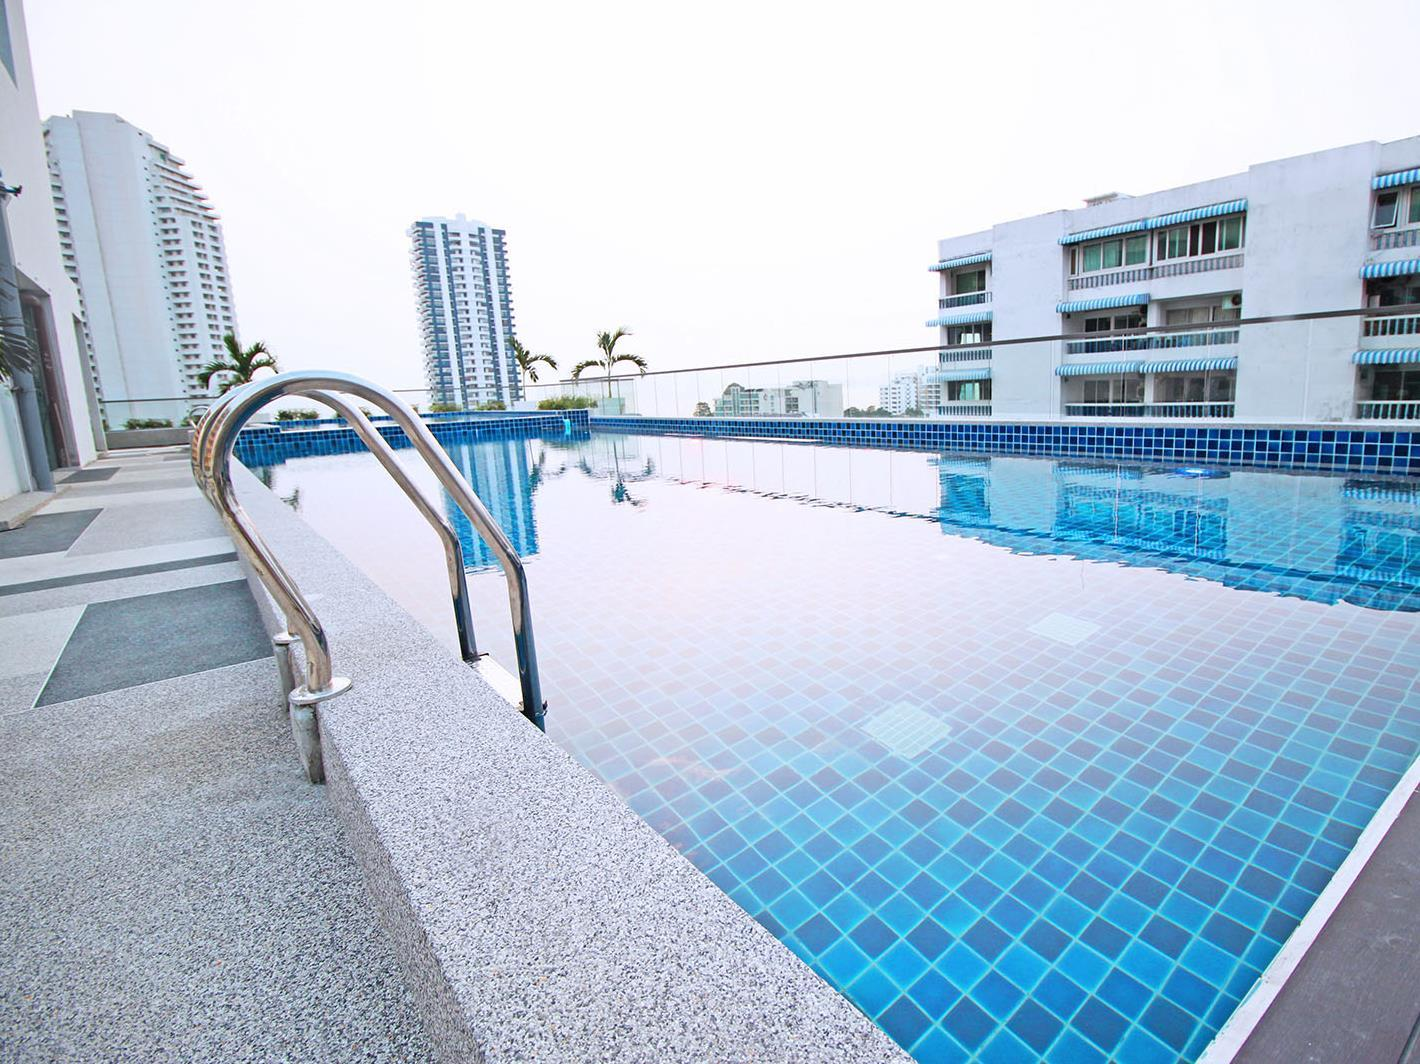 Laguna Bay 2 By Pattaya Sunny Rental - Hotels and Accommodation in Thailand, Asia